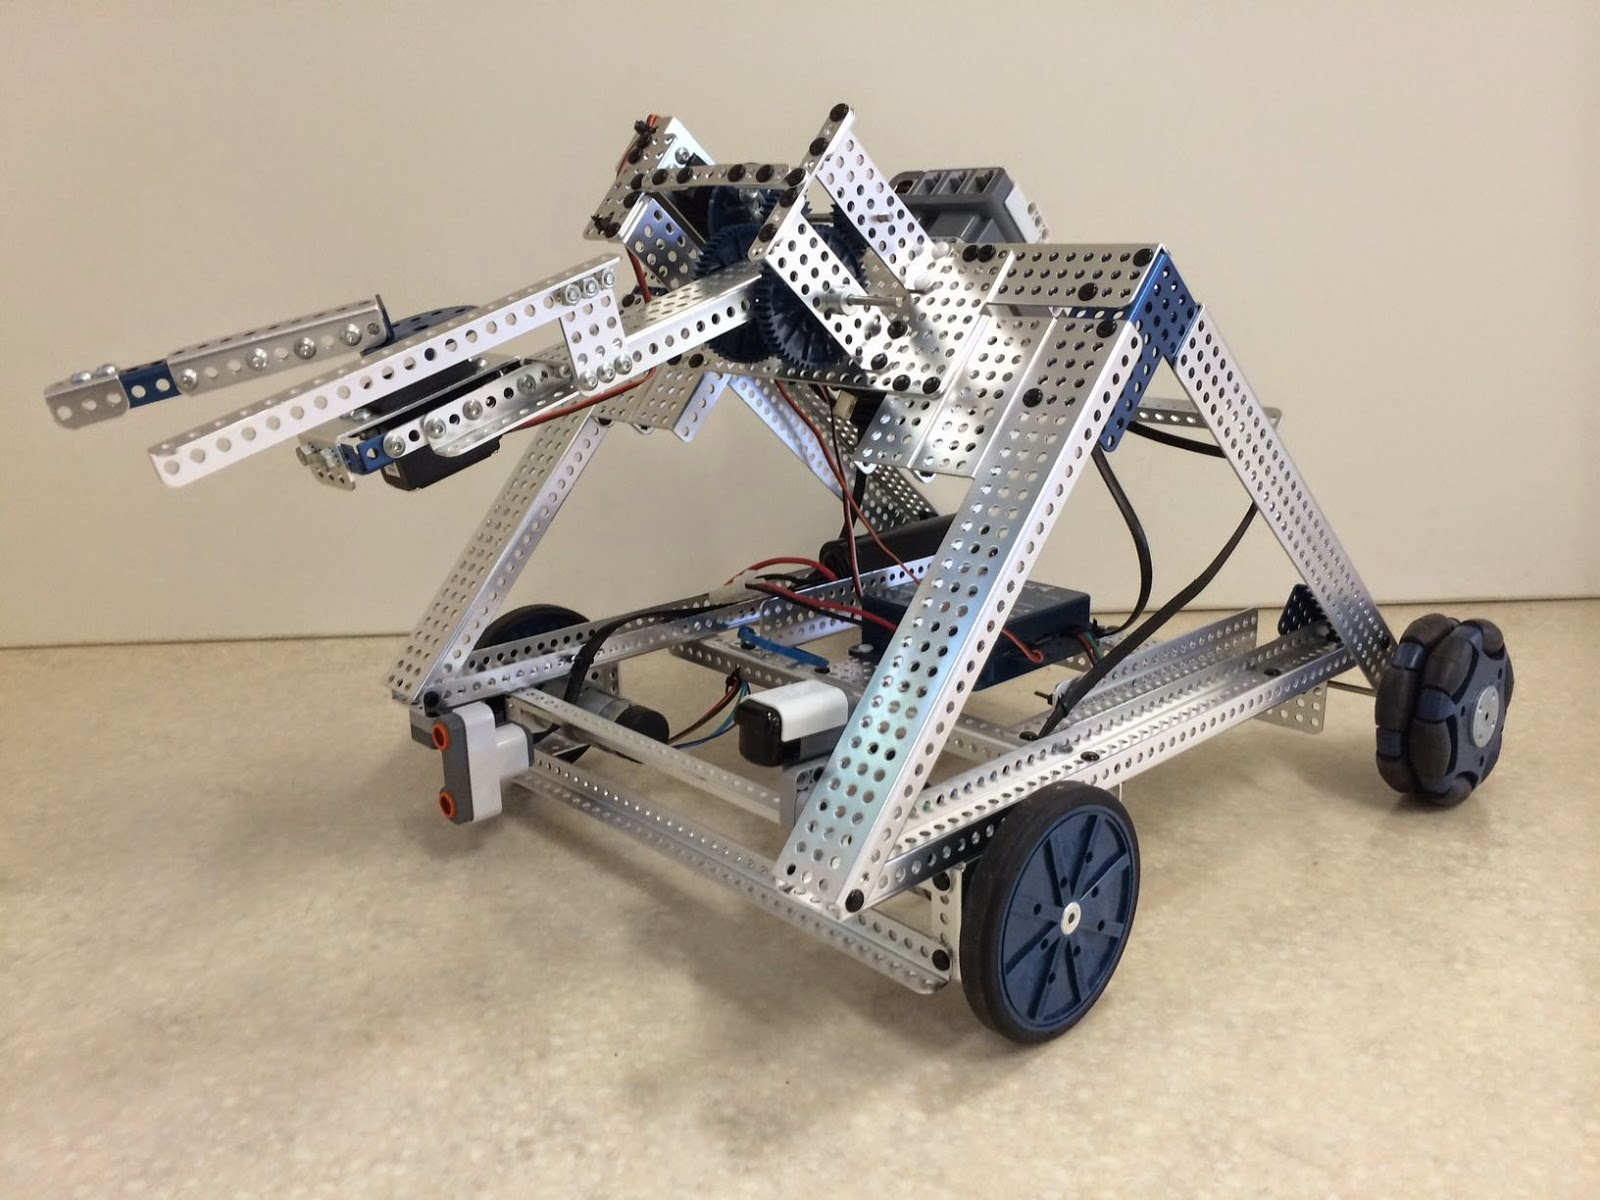 FTC PushBot Guides: Resources By Teams for Teams | FIRST Tech Challenge